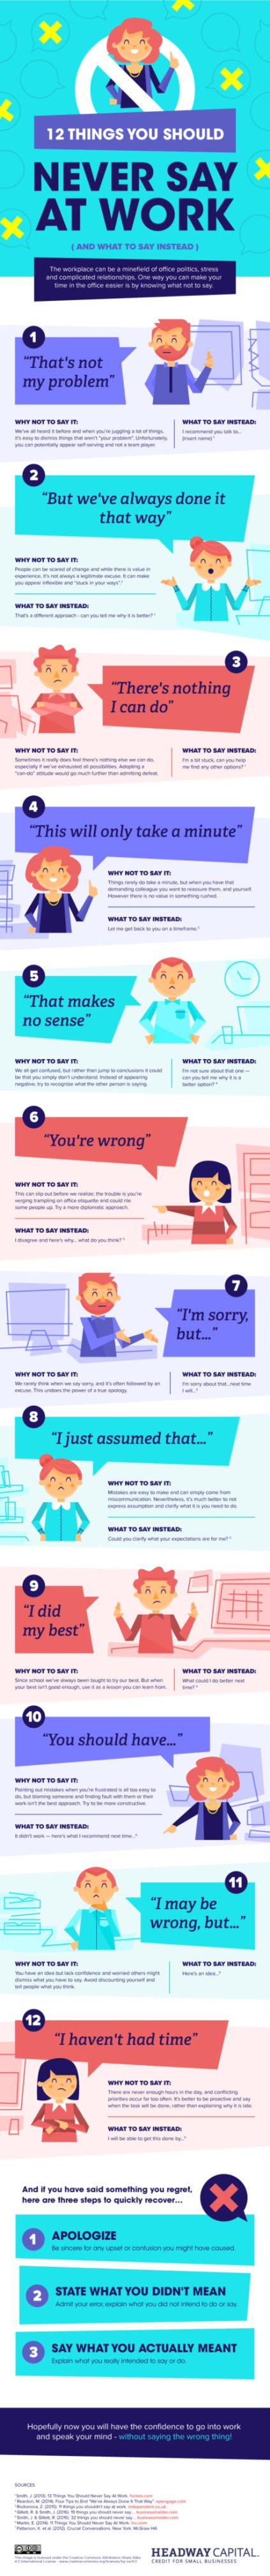 infographic_never_say_at_work-460x4376